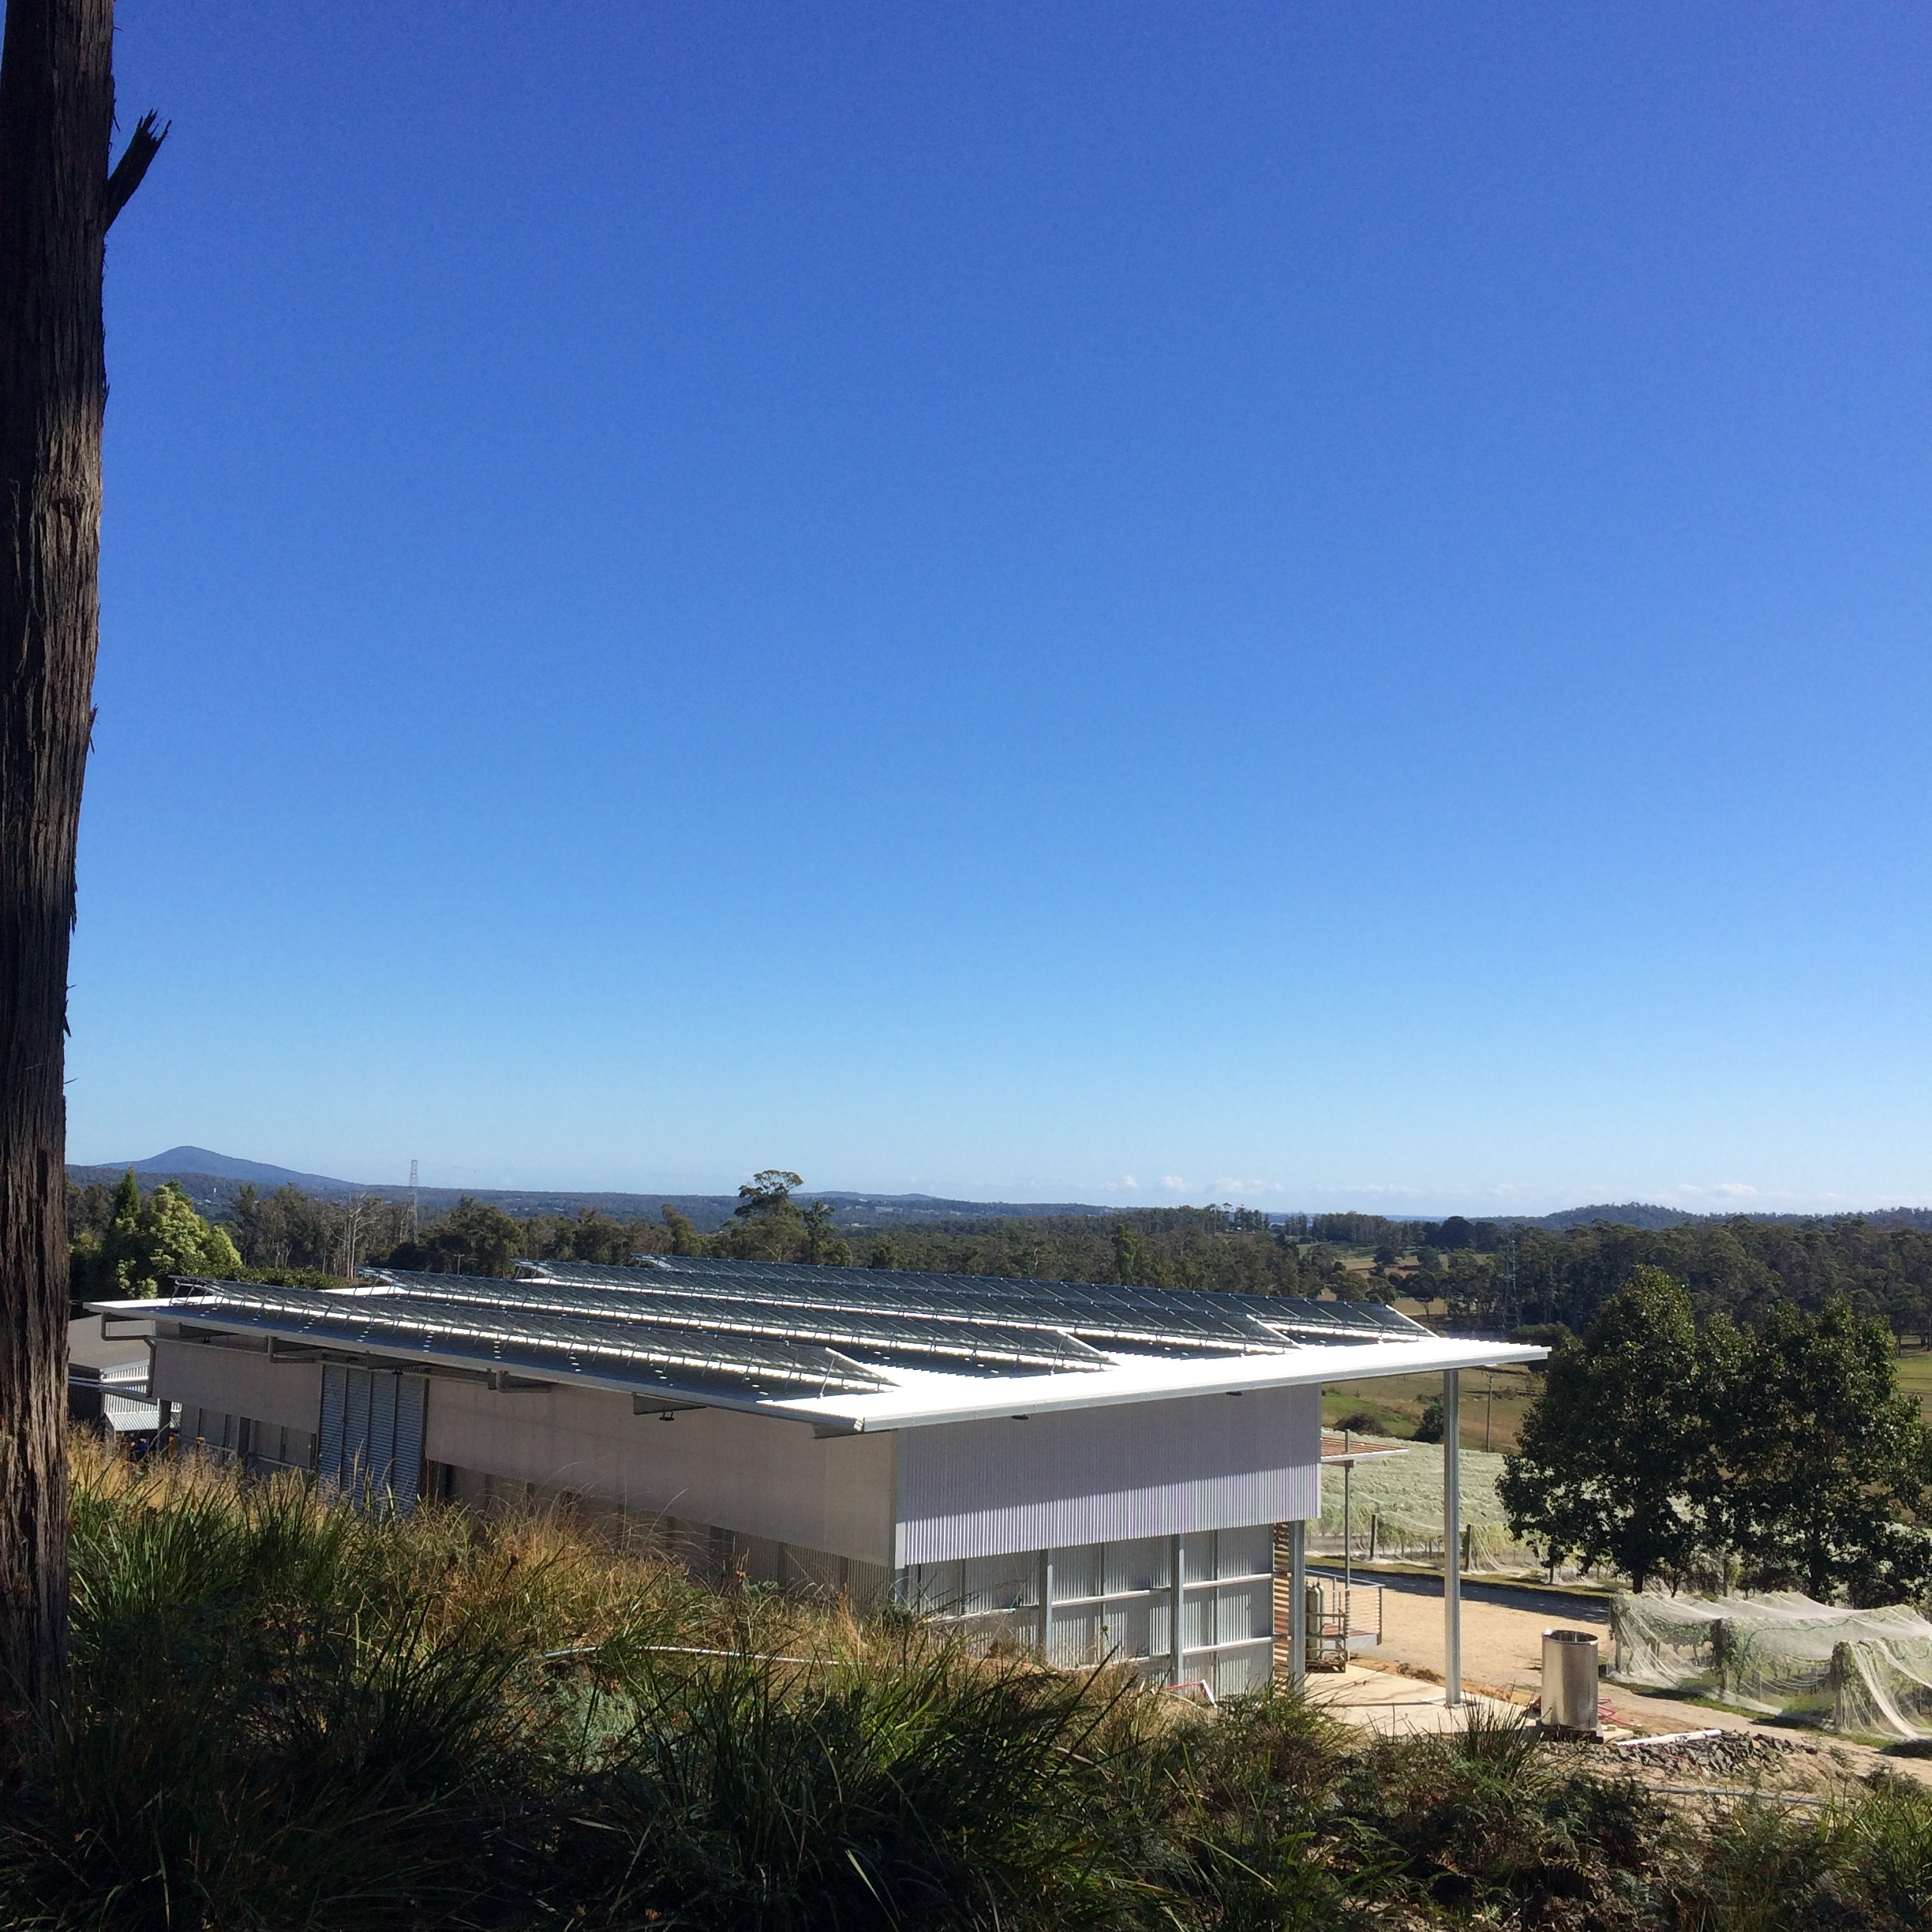 Warm, sunny Autumn days were a welcome start to vintage. We were ready to make wine, powered by the sun in Tasmania's first 100% solar powered winery!